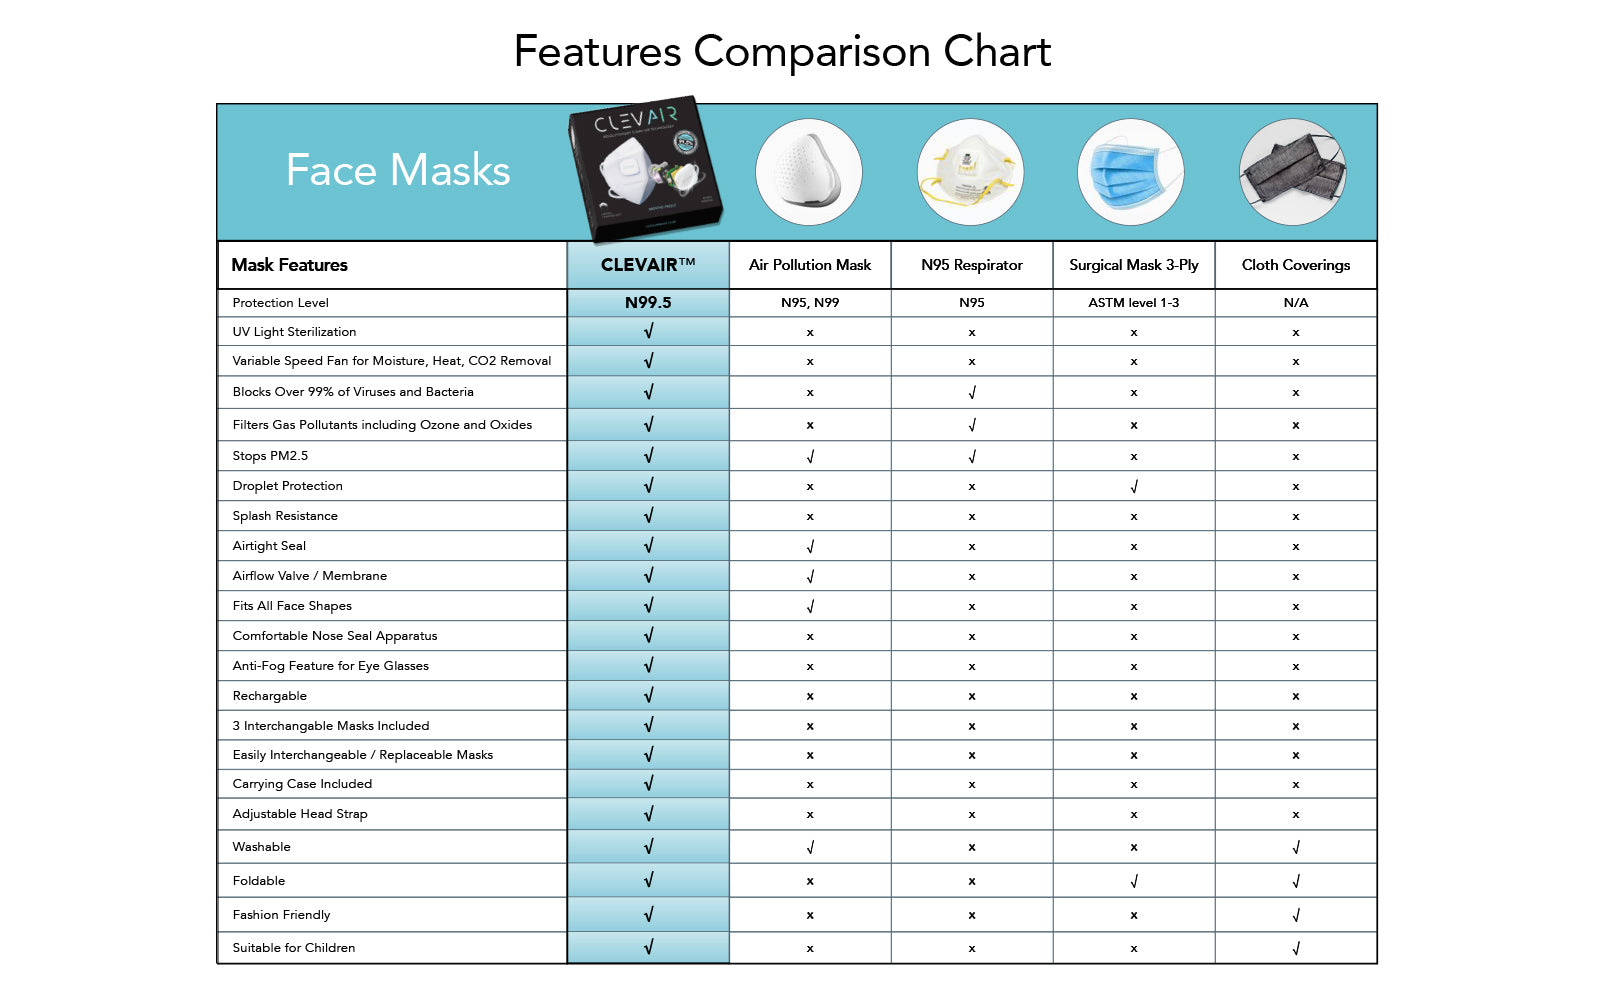 Features Comparison Chart, comparing respiratory face masks including CLEVAIR N99.5 UV Mask with Fan vs inferior Air Pollution Mask, N95 Respirator Mask, Surgical 3-Ply Mask, and Cloth Face Coverings